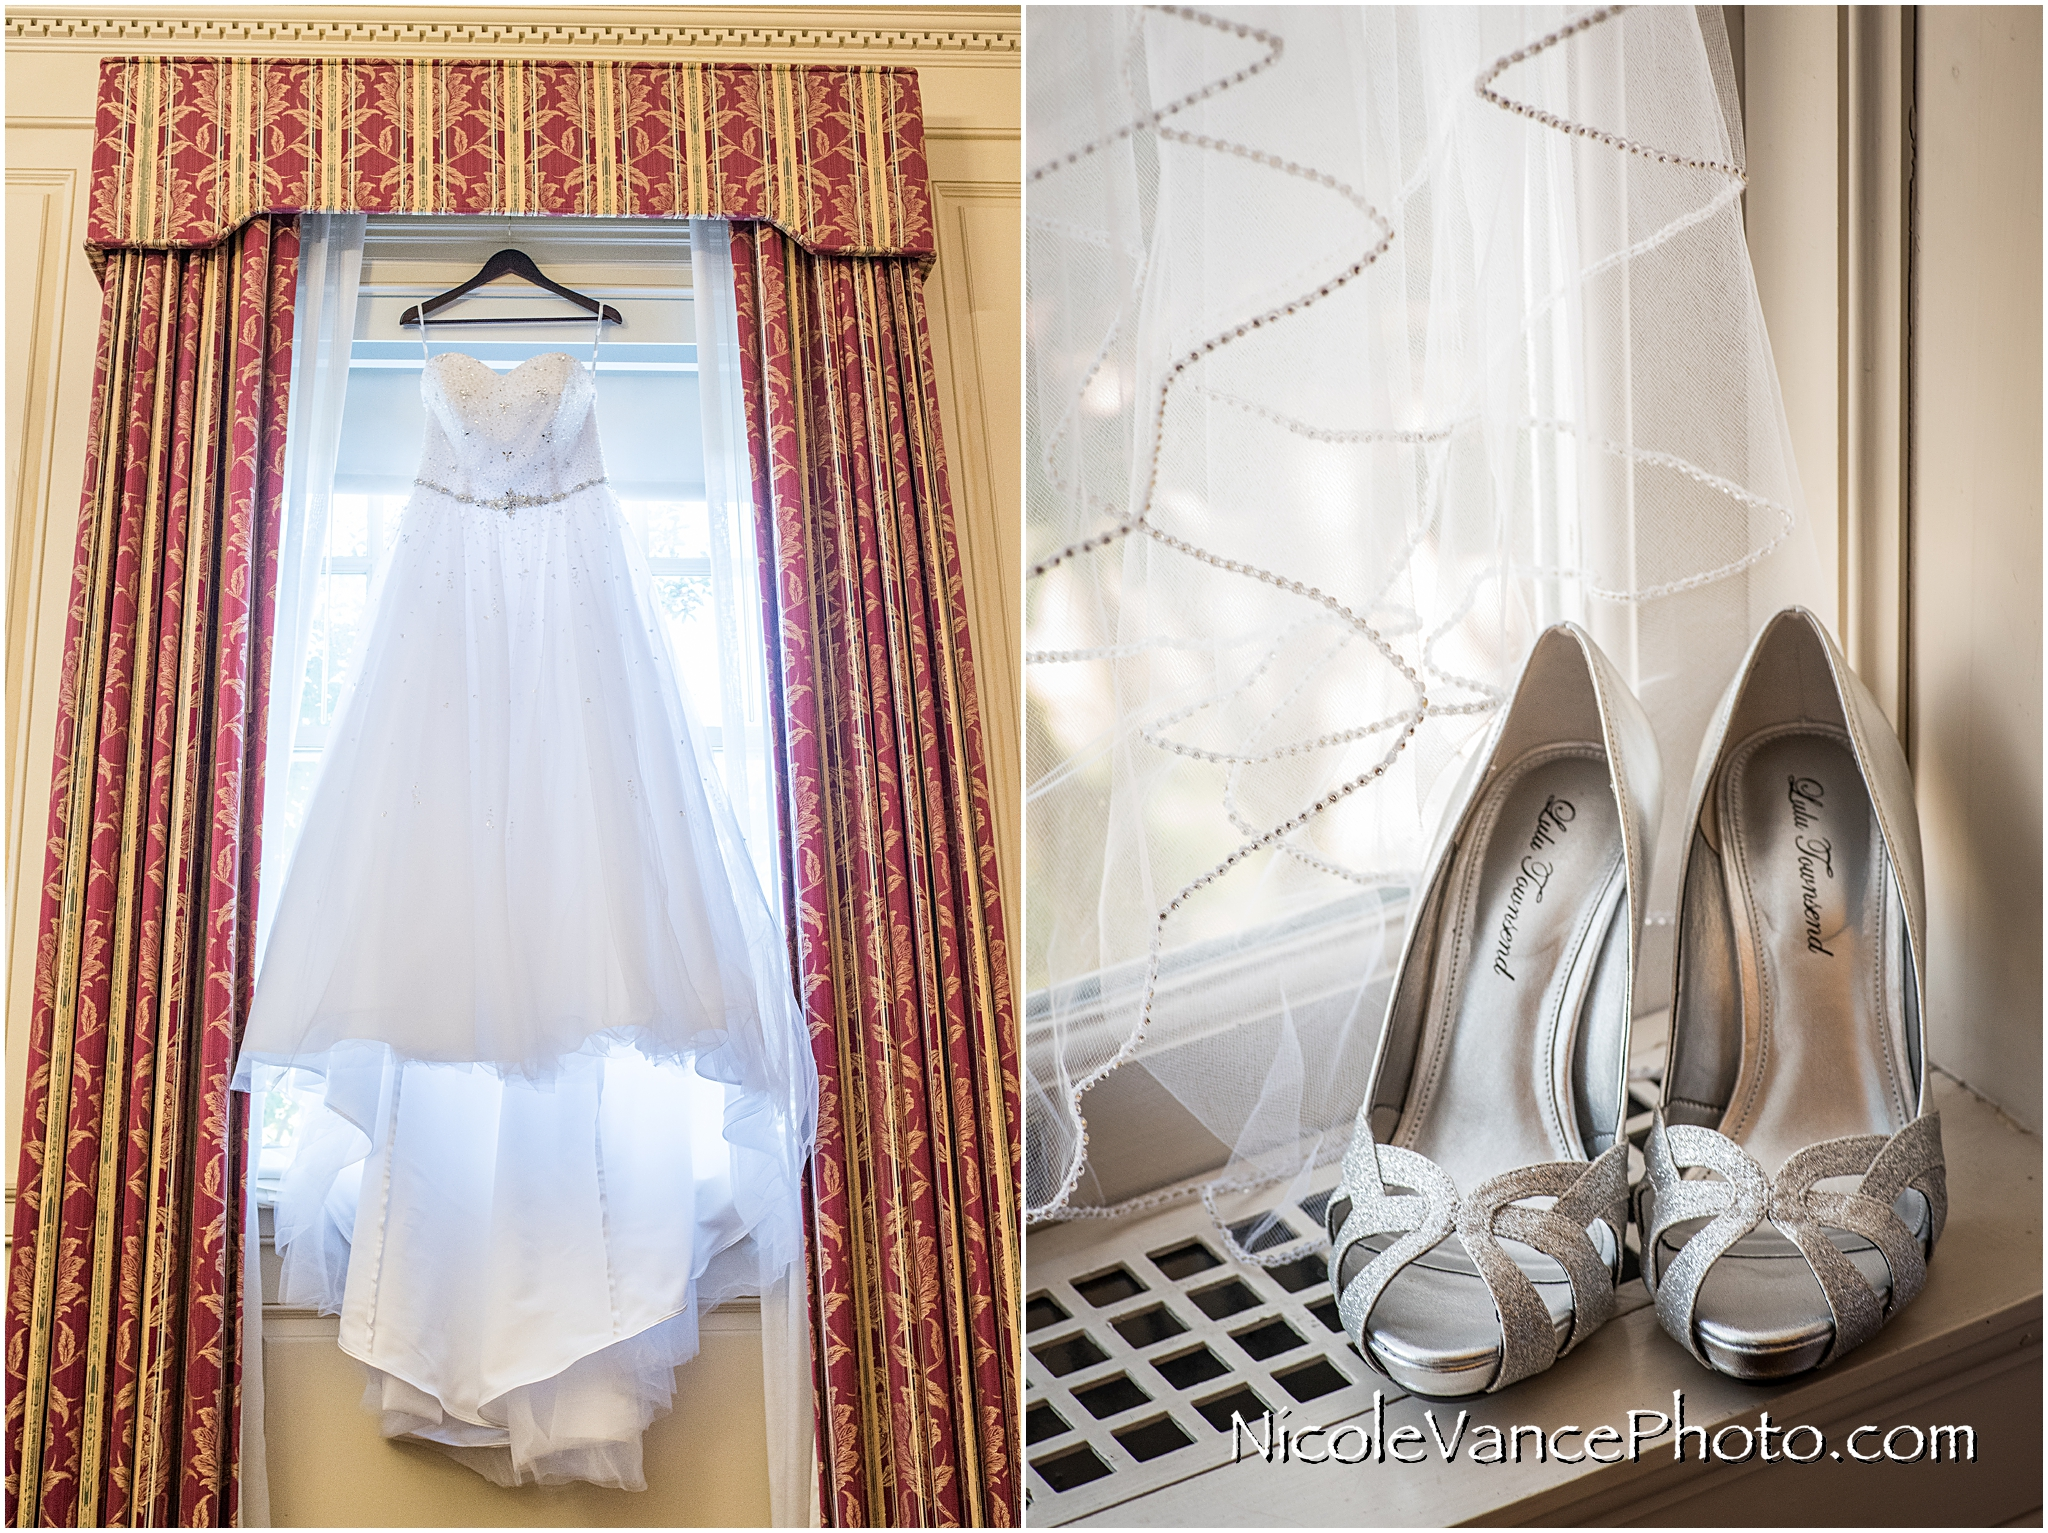 The brides dress and shoes are ready for her wedding day at Virginia Crossings.